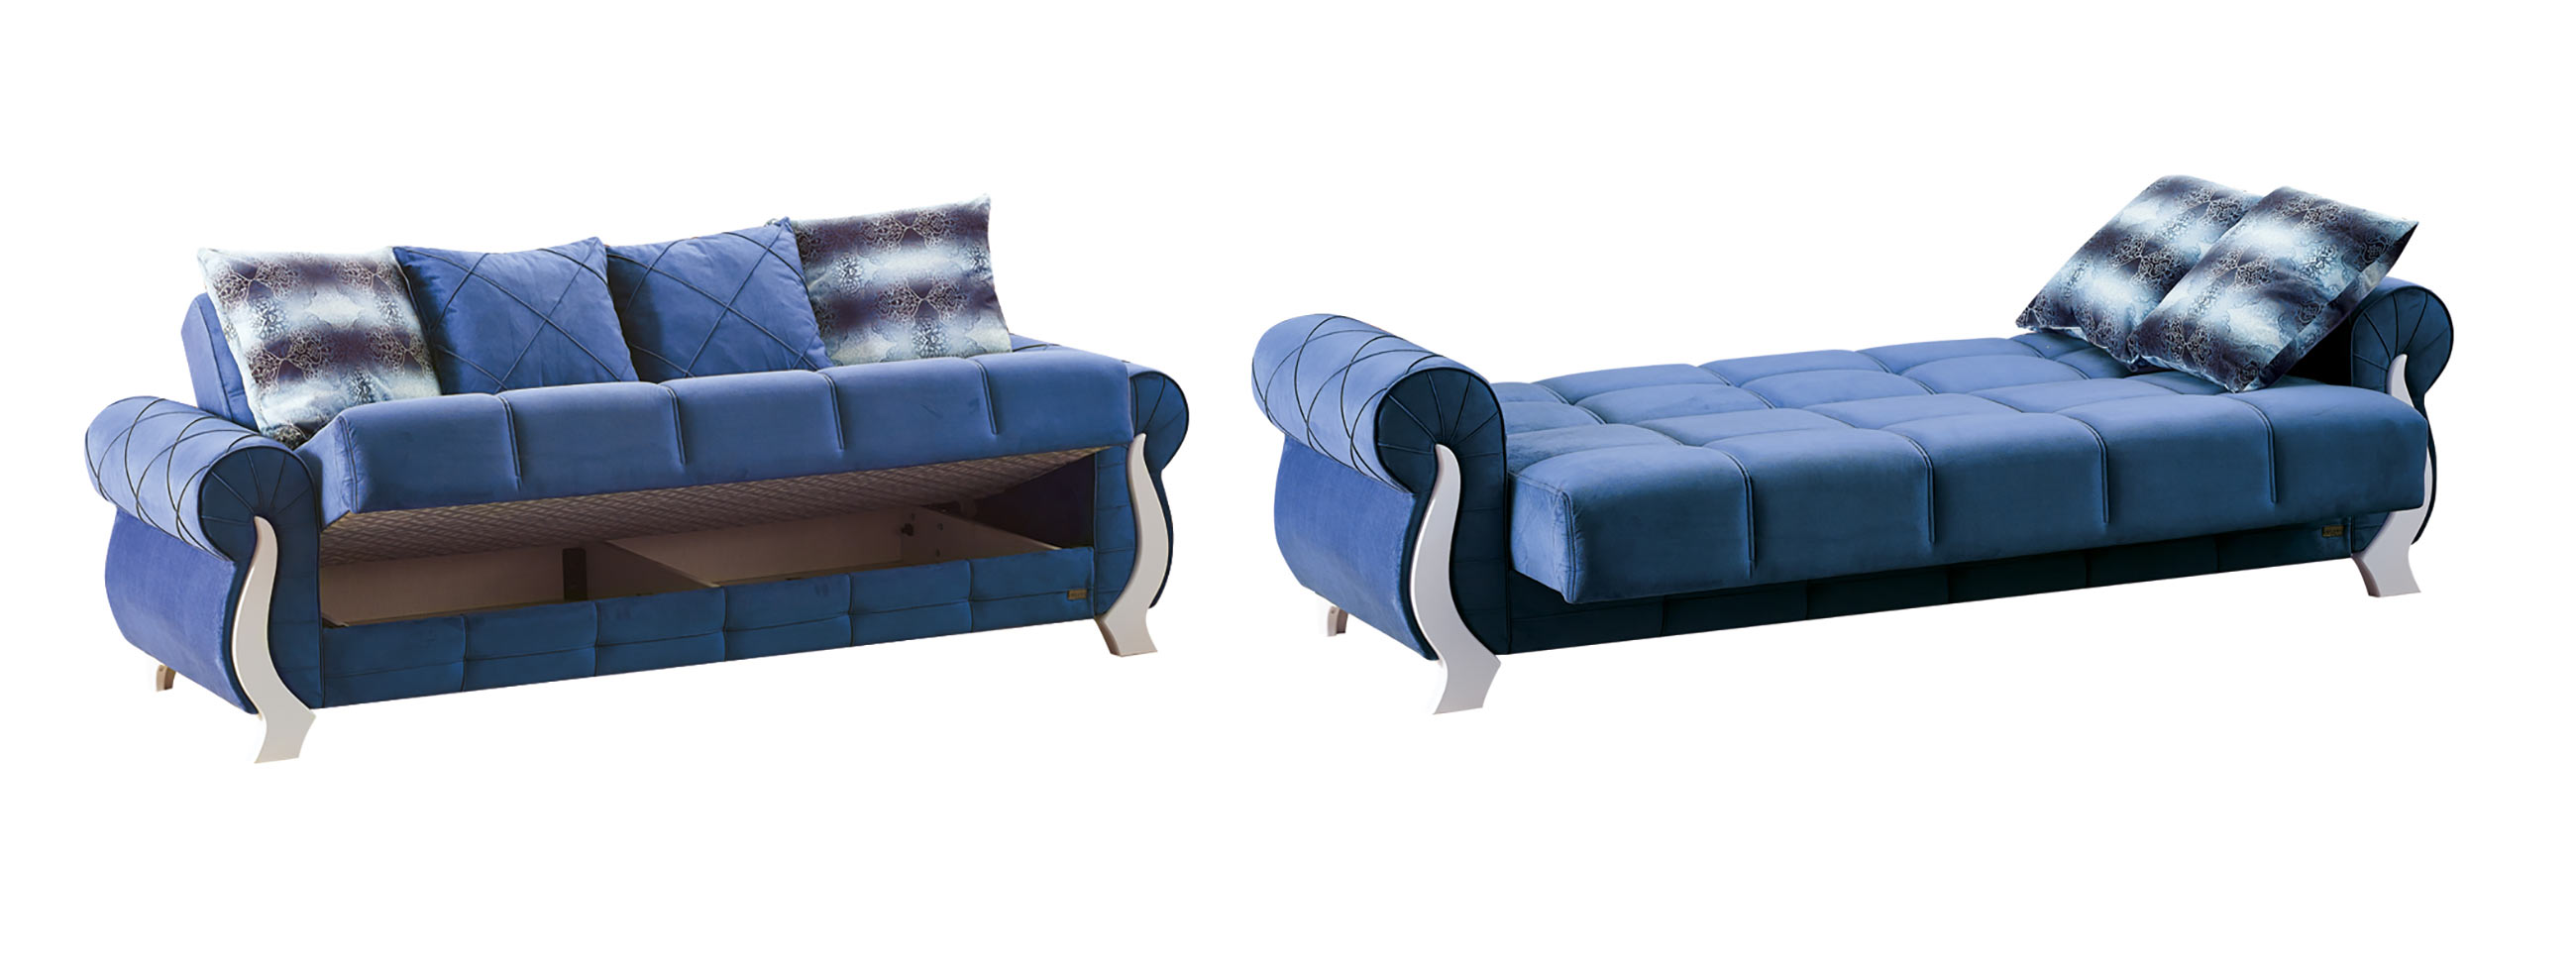 Surprising Montreal Blue Fabric Sofa Bed By Empire Furniture Usa Ibusinesslaw Wood Chair Design Ideas Ibusinesslaworg